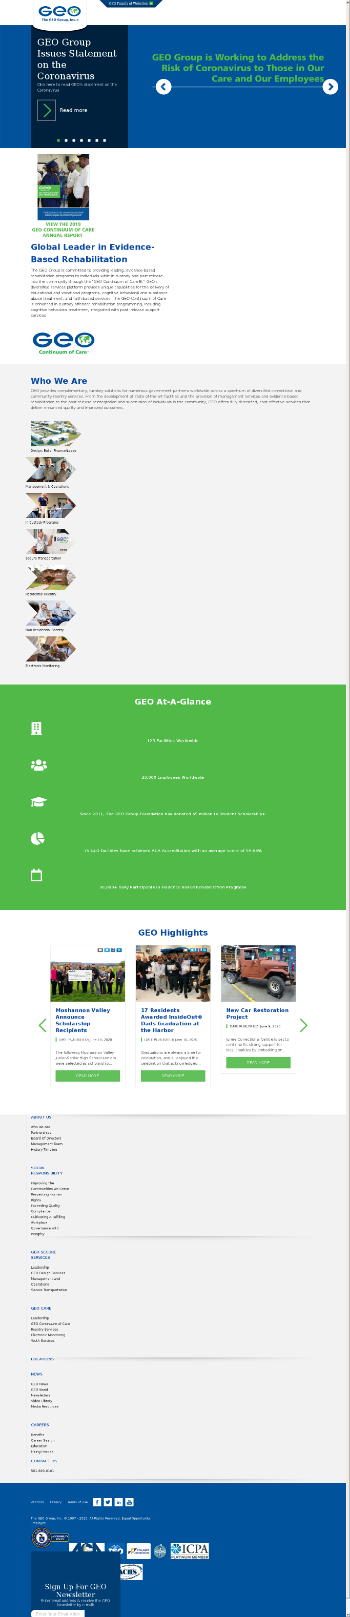 The GEO Group, Inc. Website Screenshot